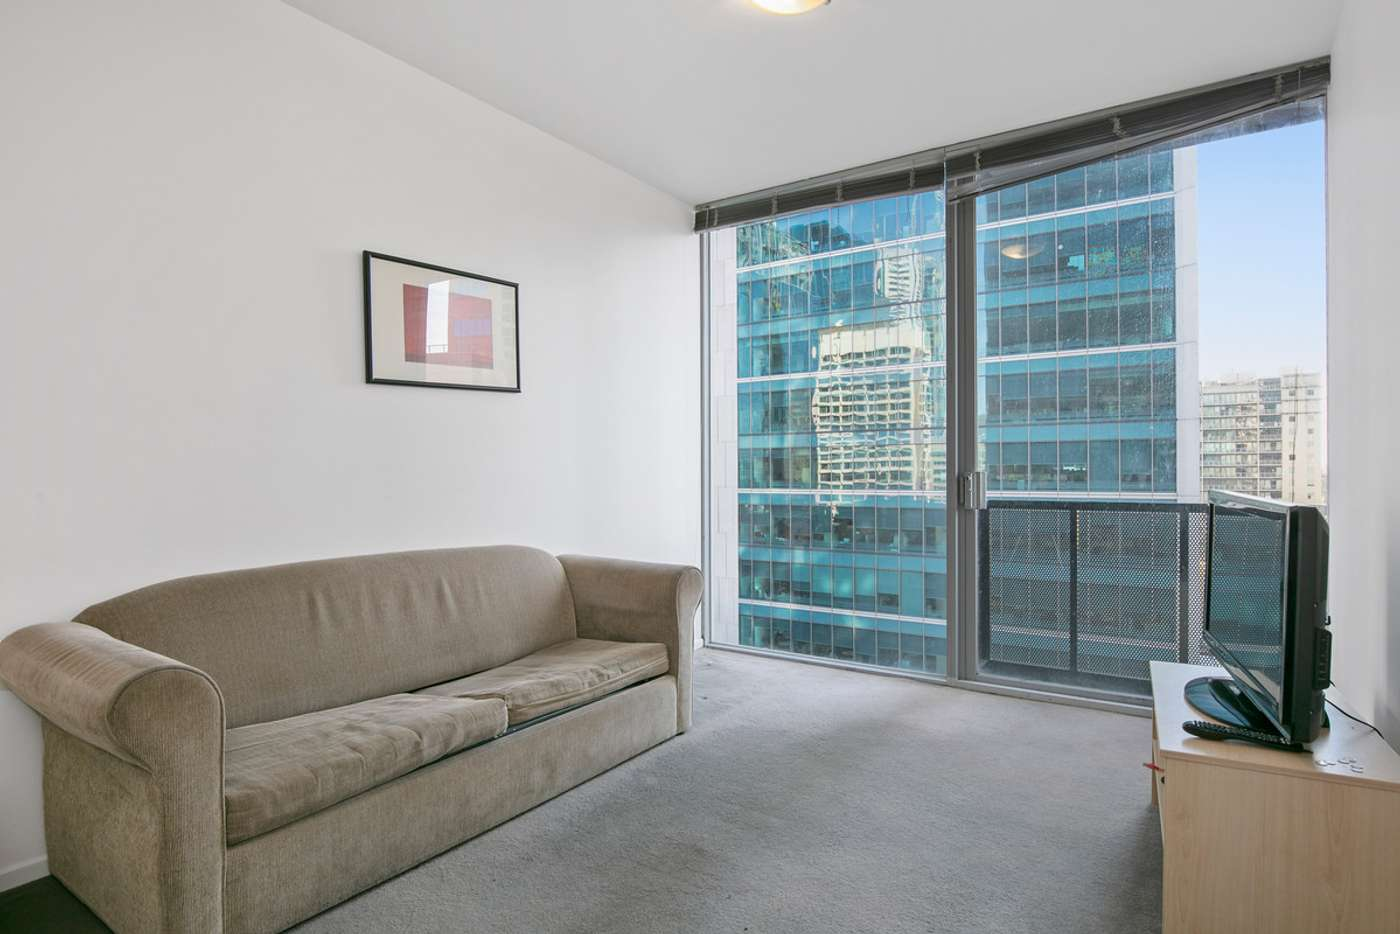 Main view of Homely apartment listing, 1201/39 Lonsdale Street, Melbourne VIC 3000